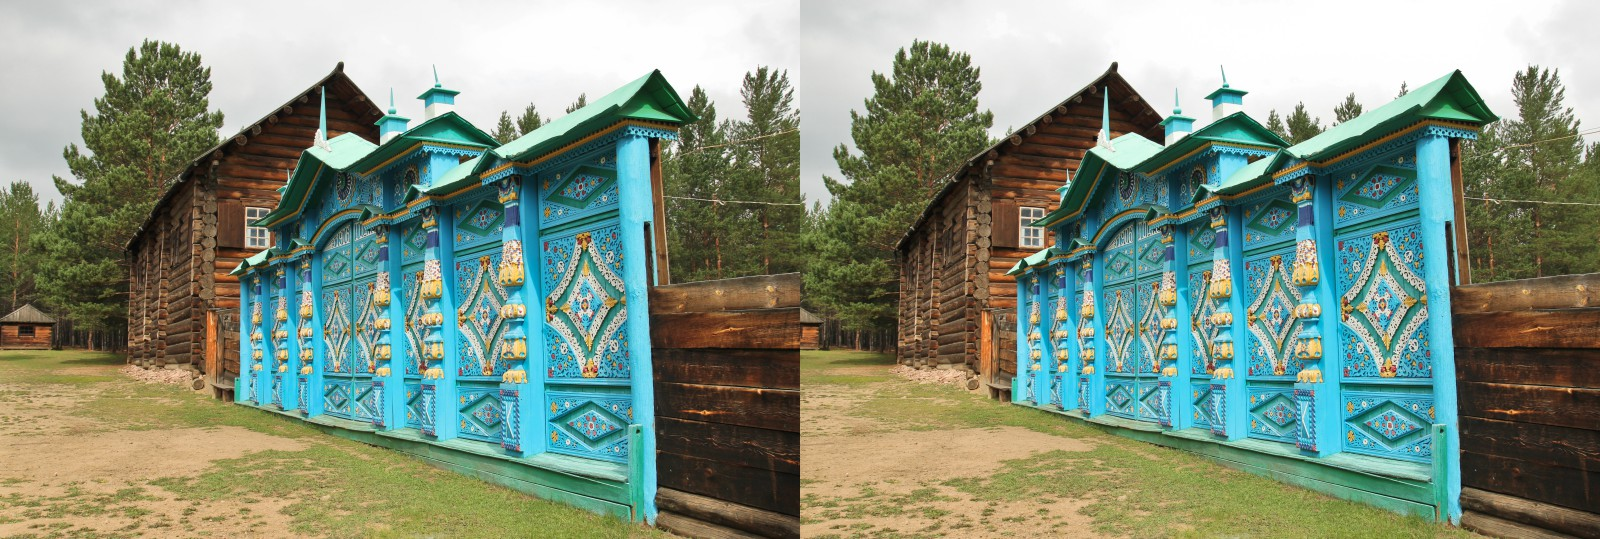 Open-air museum, Ulan-Ude